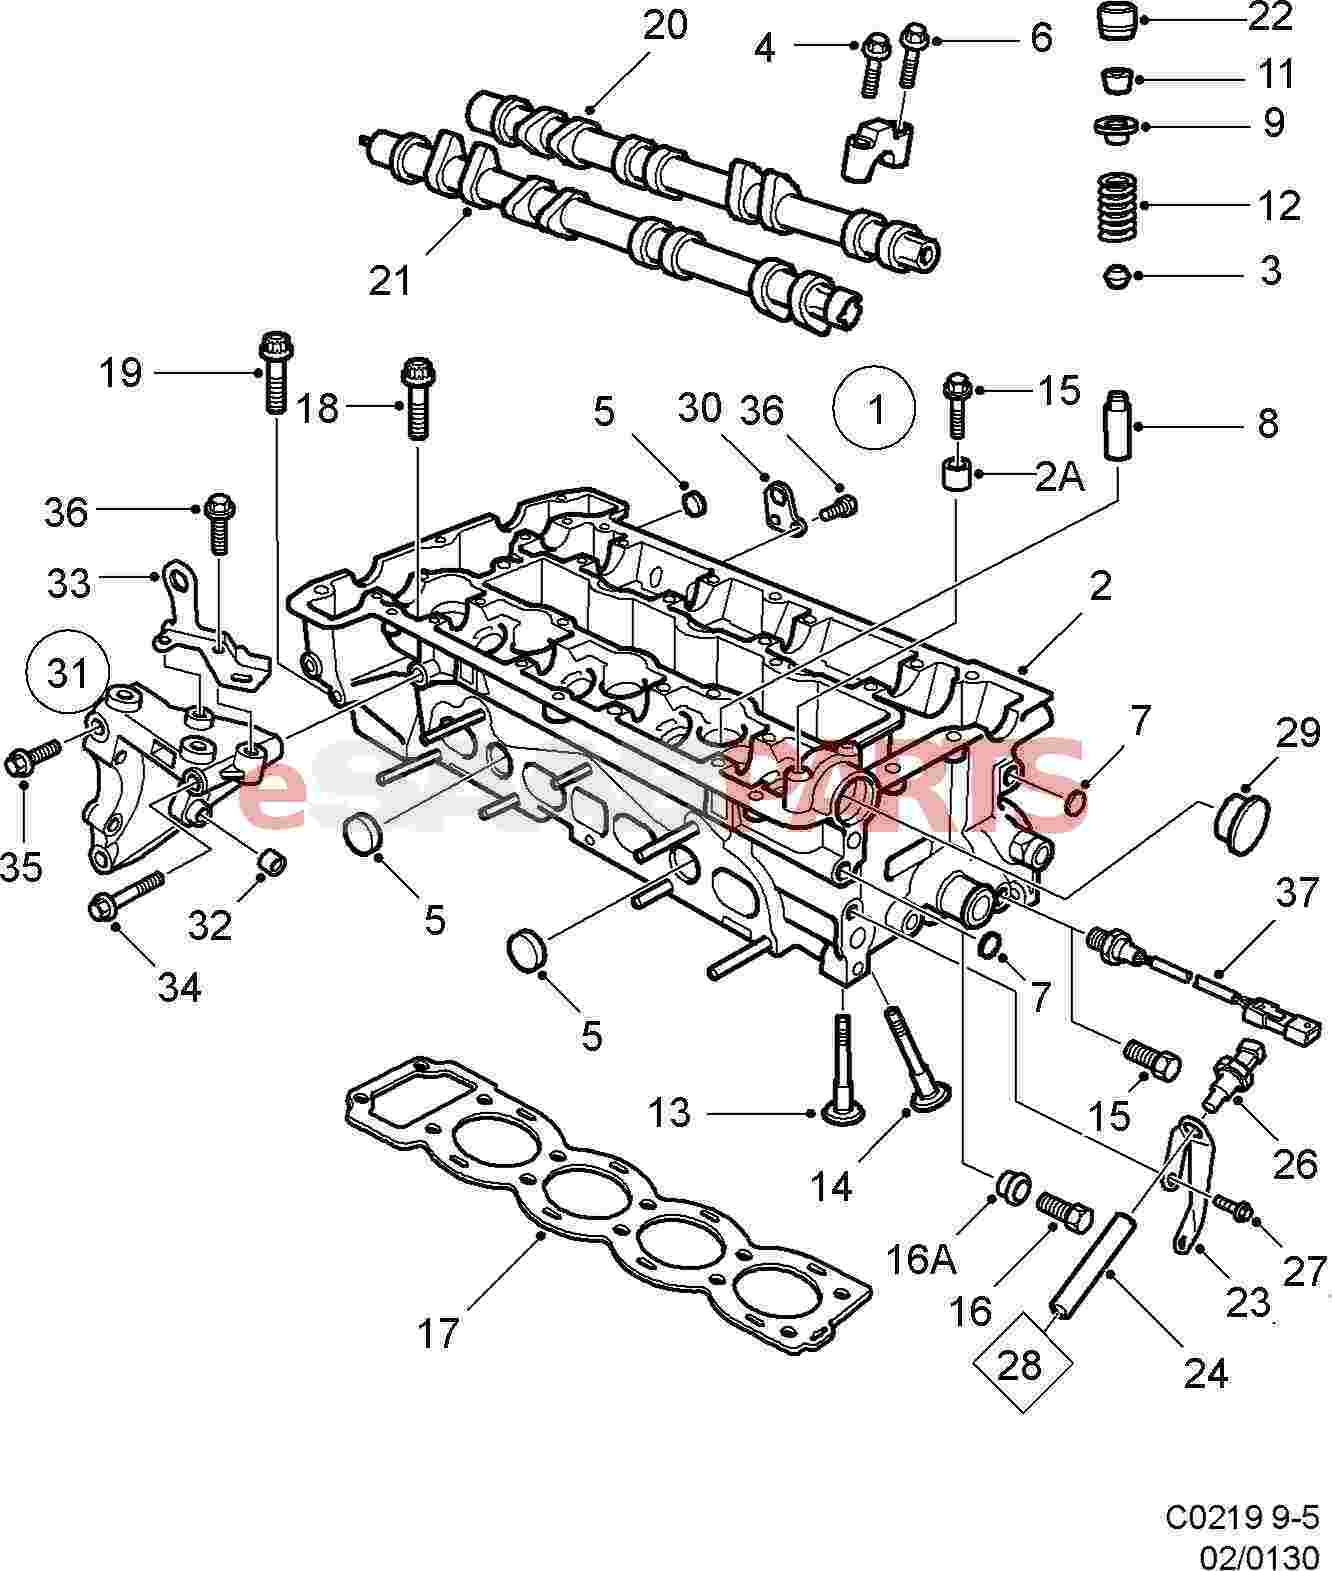 Pontiac G6 Exhaust Diagram